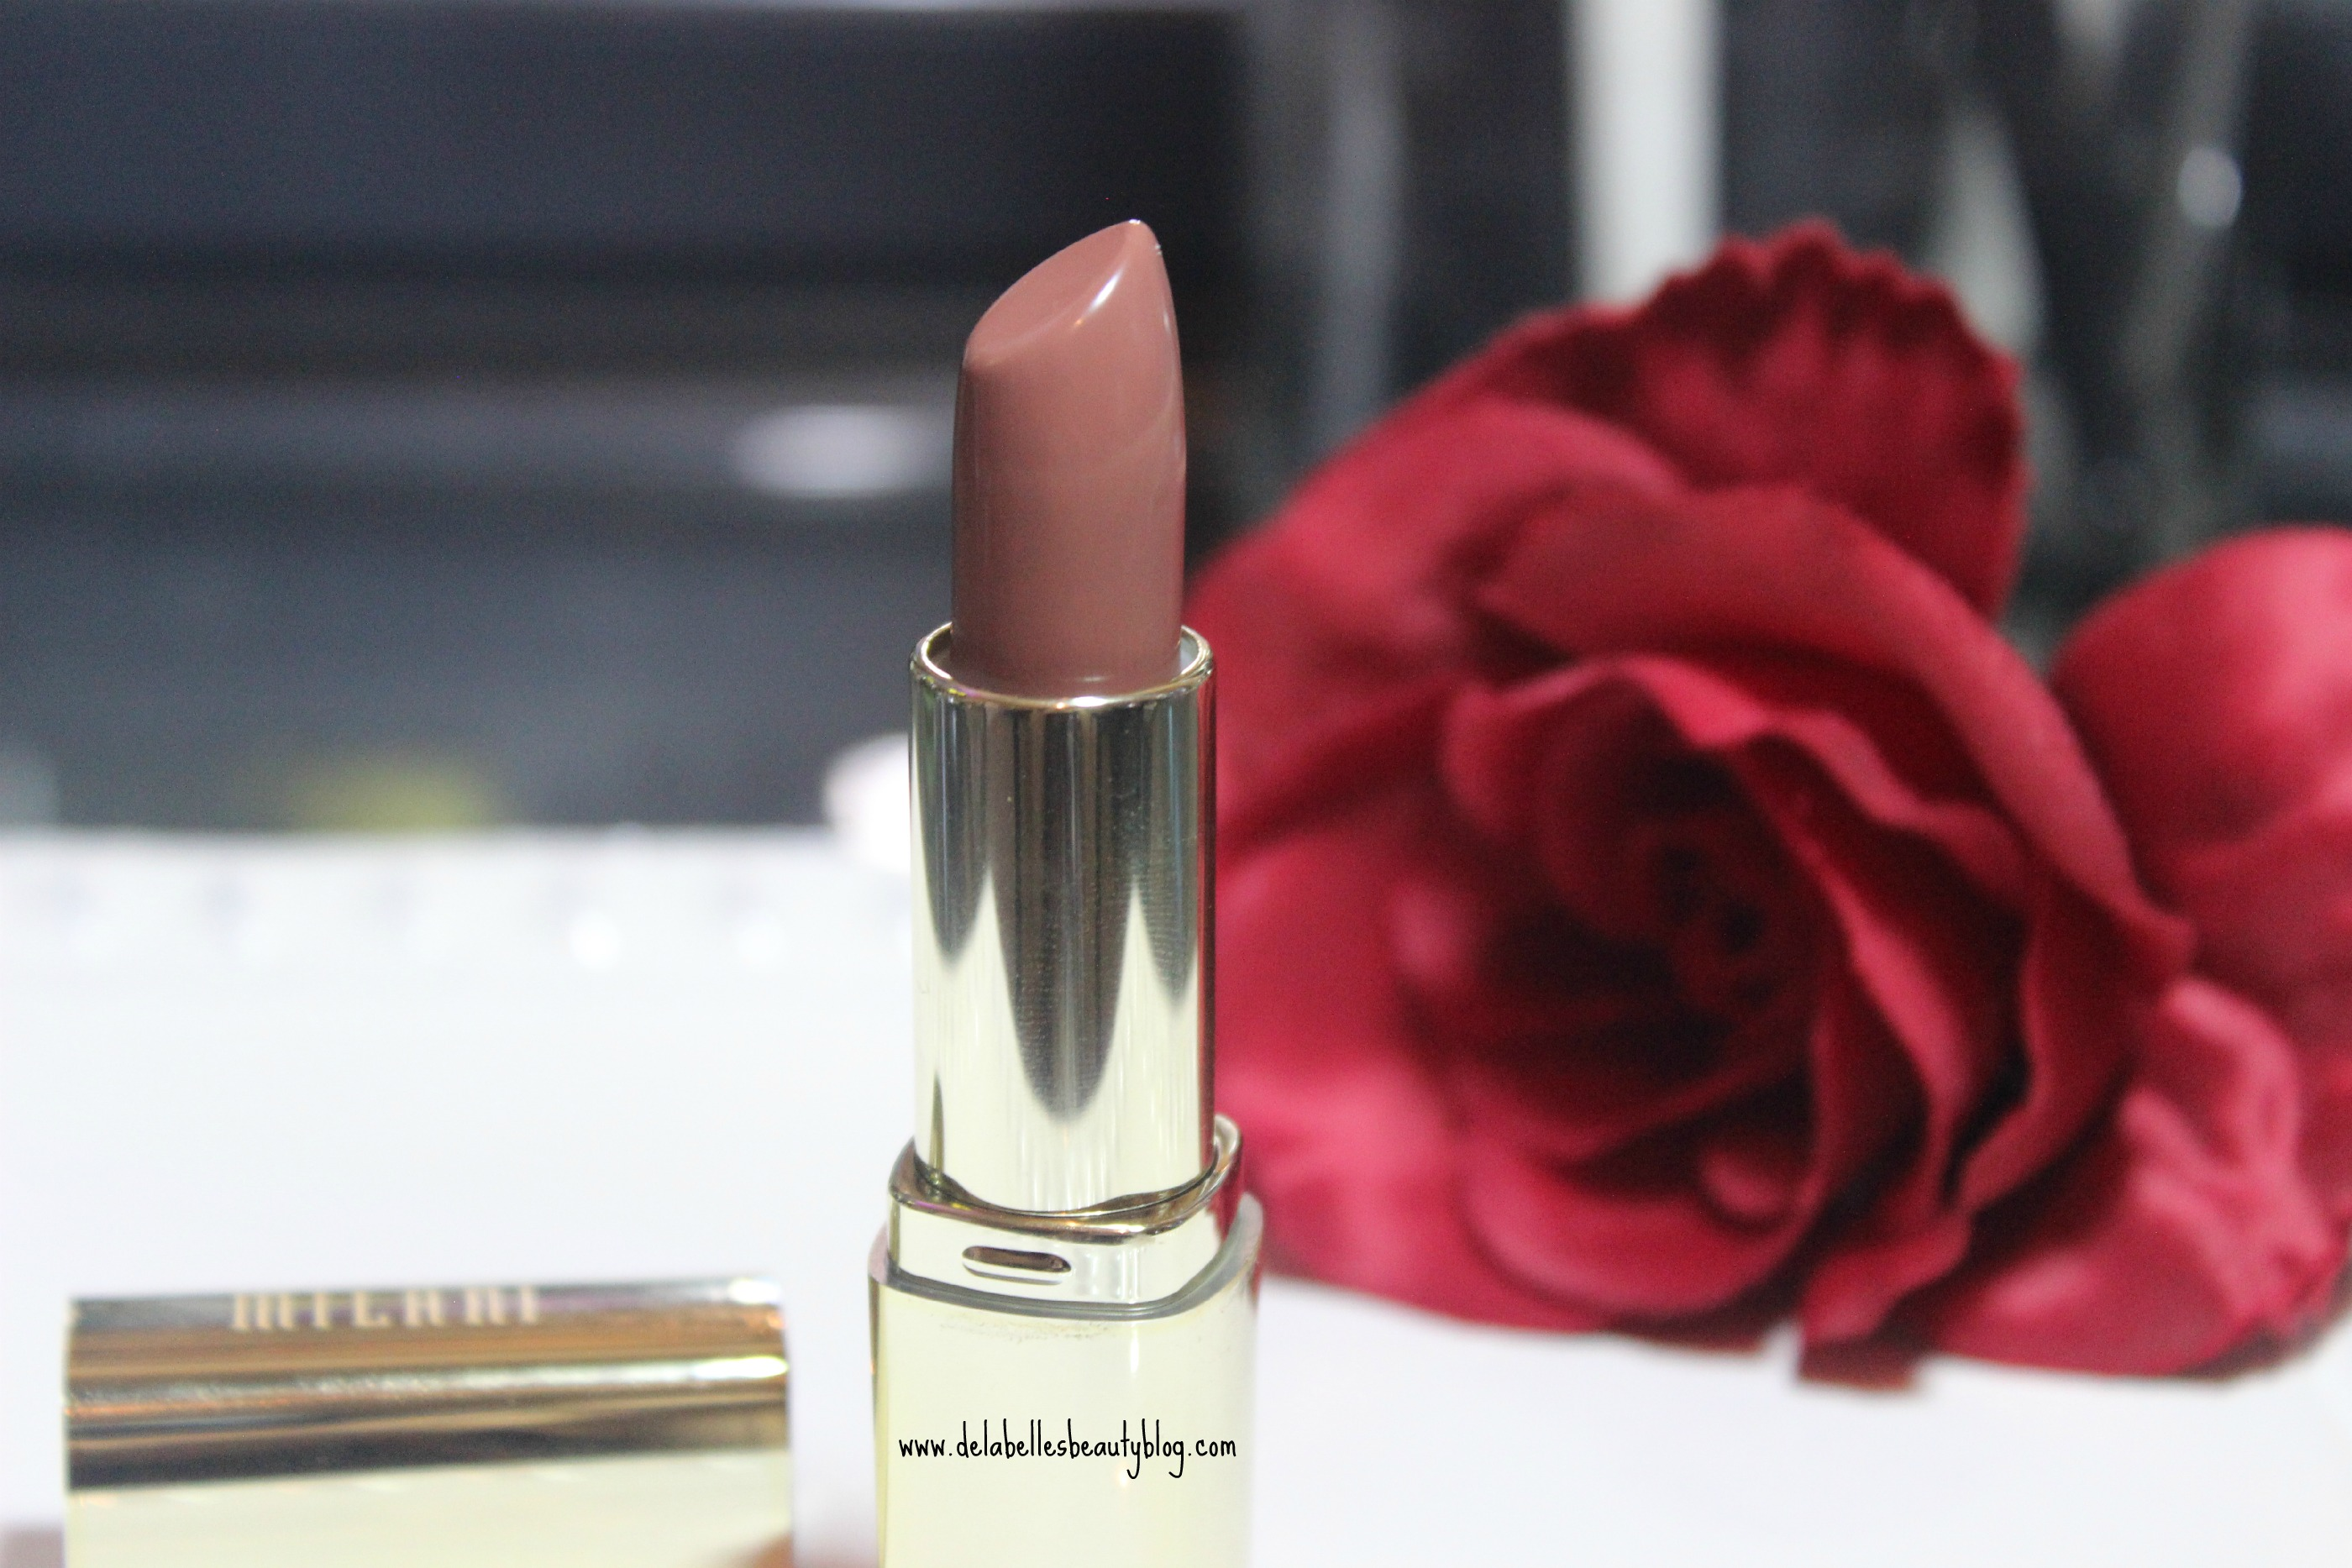 Milani Lipstick in Teddy Bare Plus Swatches